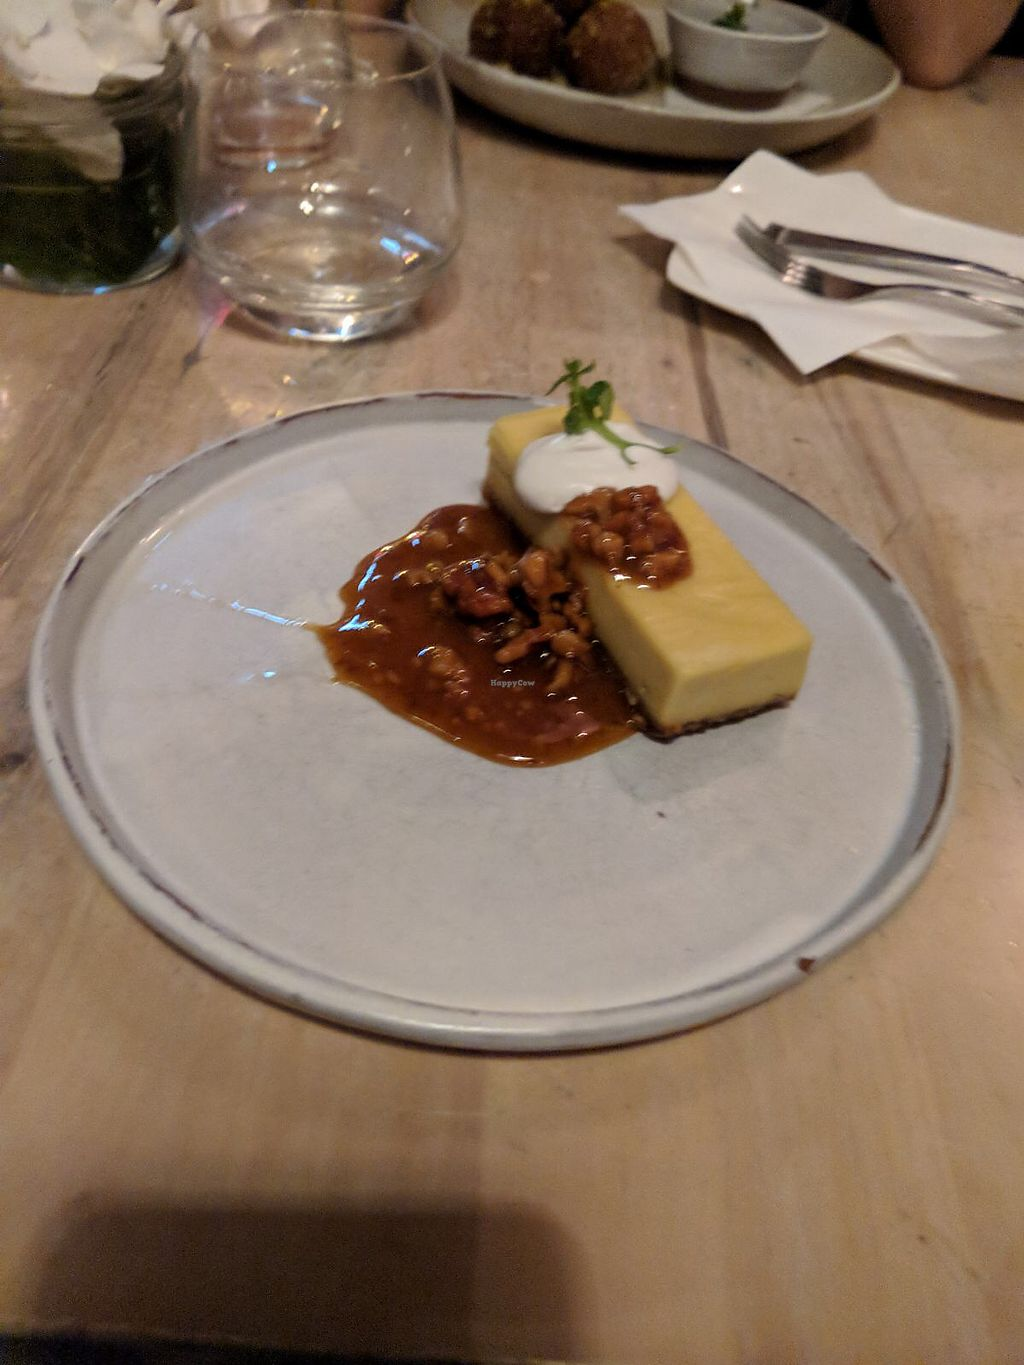 """Photo of The Acorn  by <a href=""""/members/profile/theresabee"""">theresabee</a> <br/>Meyers Lemon Cheesecake <br/> January 28, 2018  - <a href='/contact/abuse/image/32348/351851'>Report</a>"""